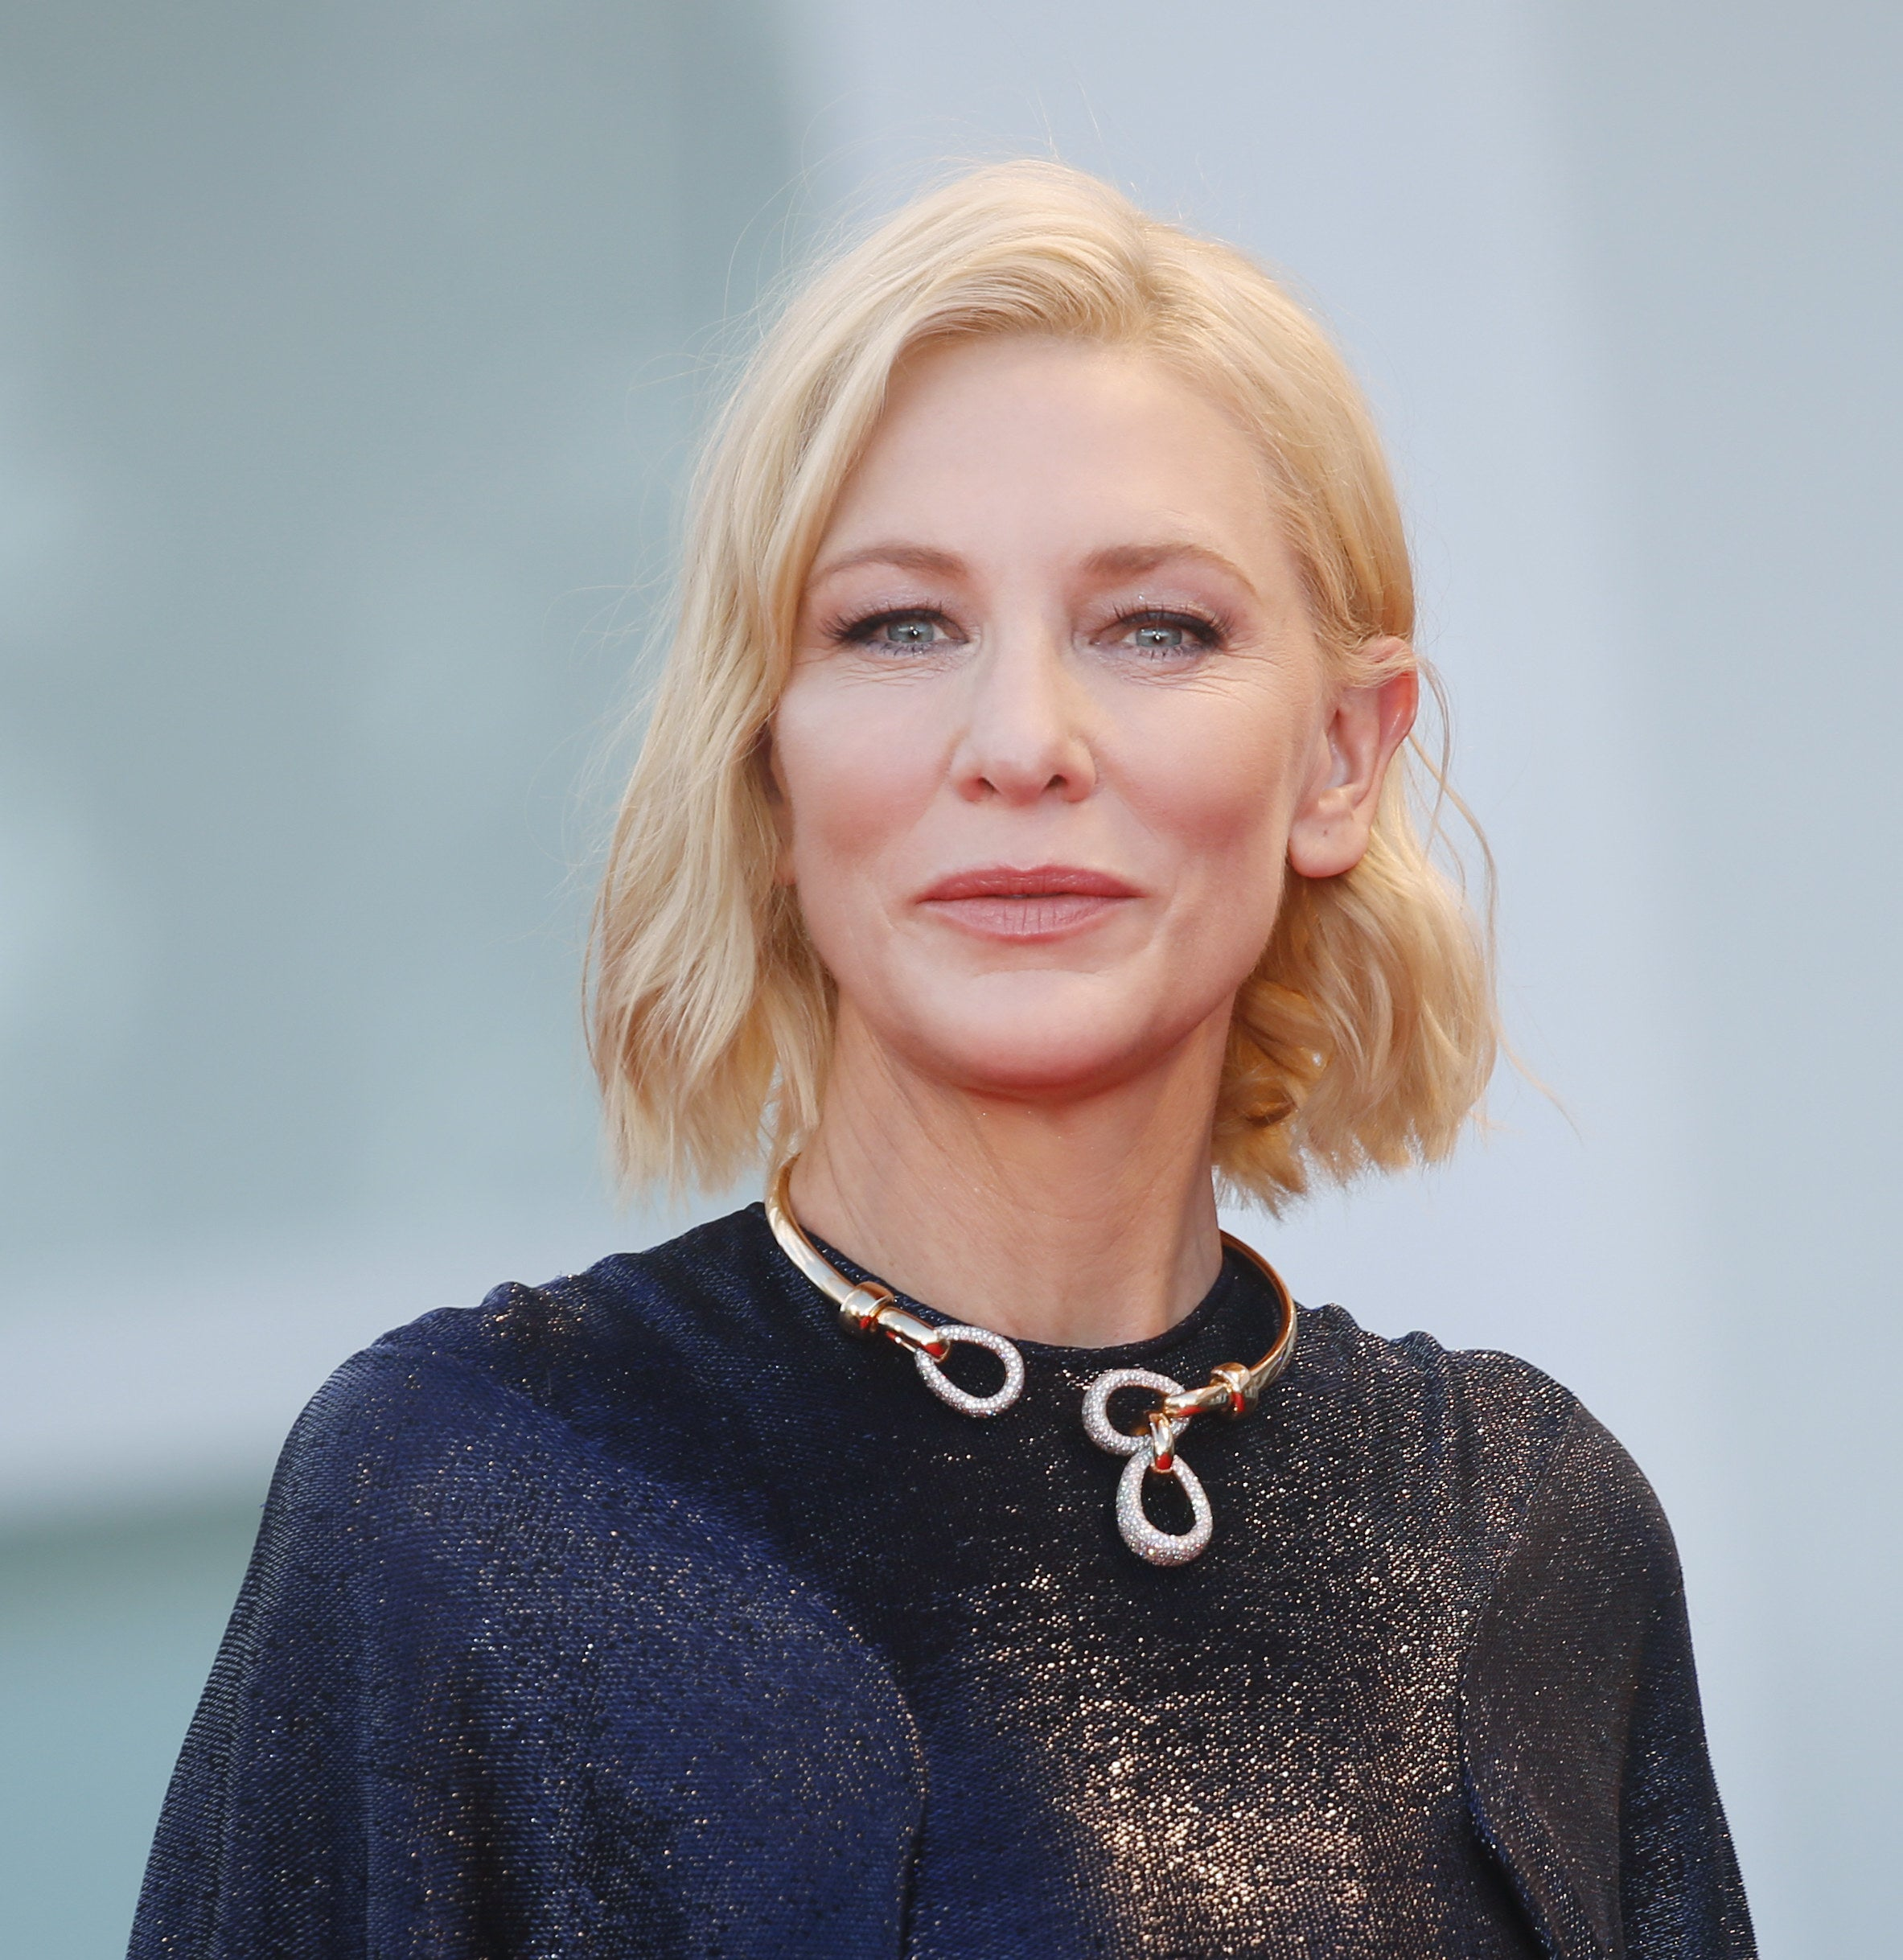 Cate Blanchett on a red carpet